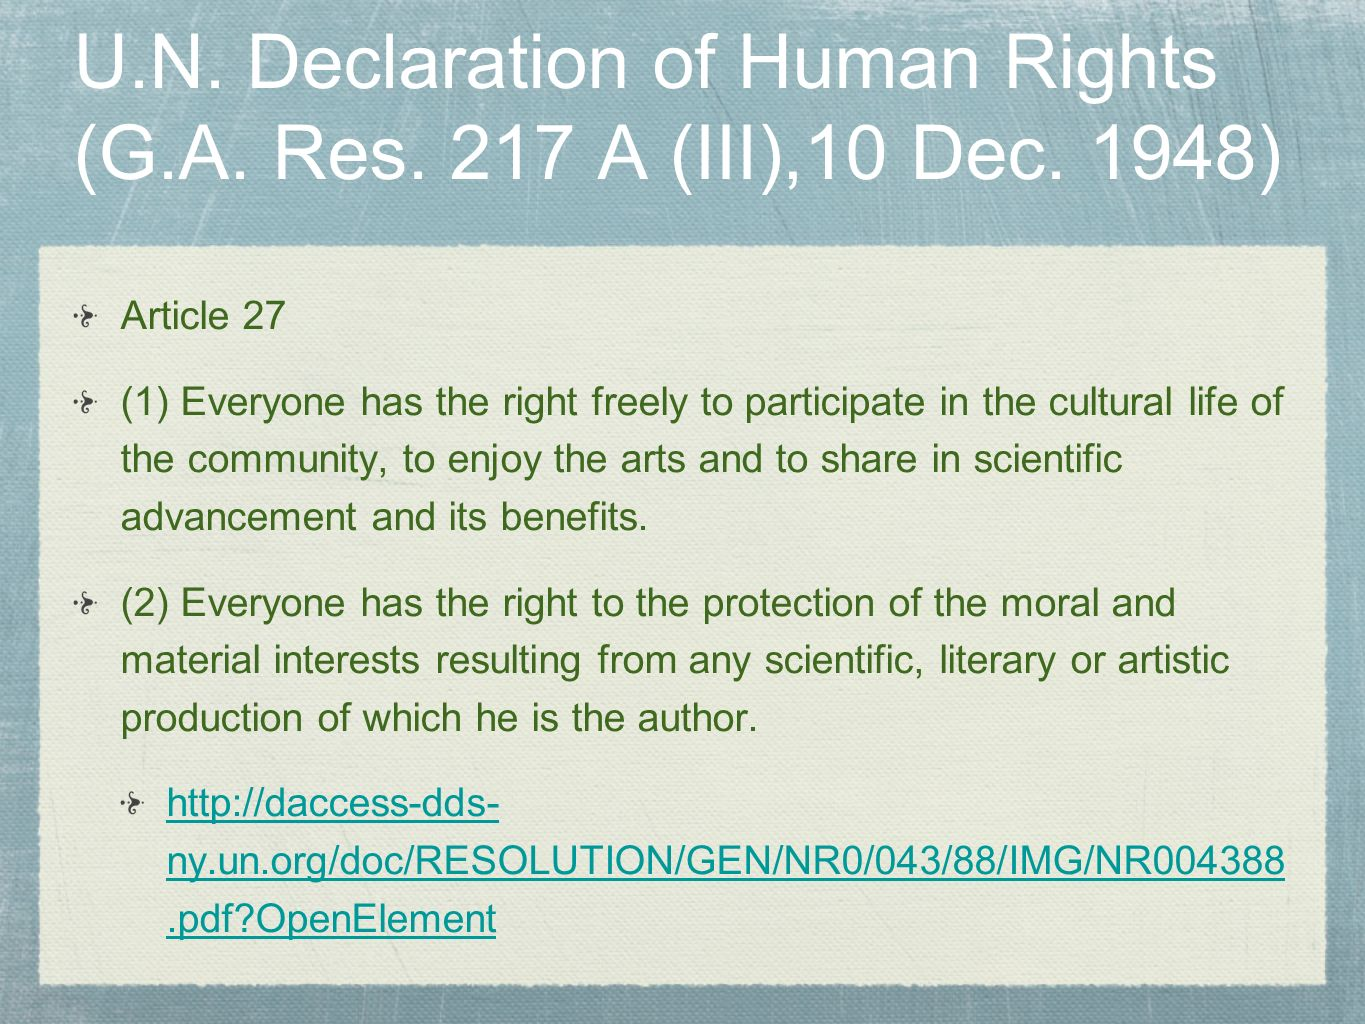 U.N. Declaration of Human Rights (G.A. Res. 217 A (III),10 Dec. 1948) Article 27 (1) Everyone has the right freely to participate in the cultural life